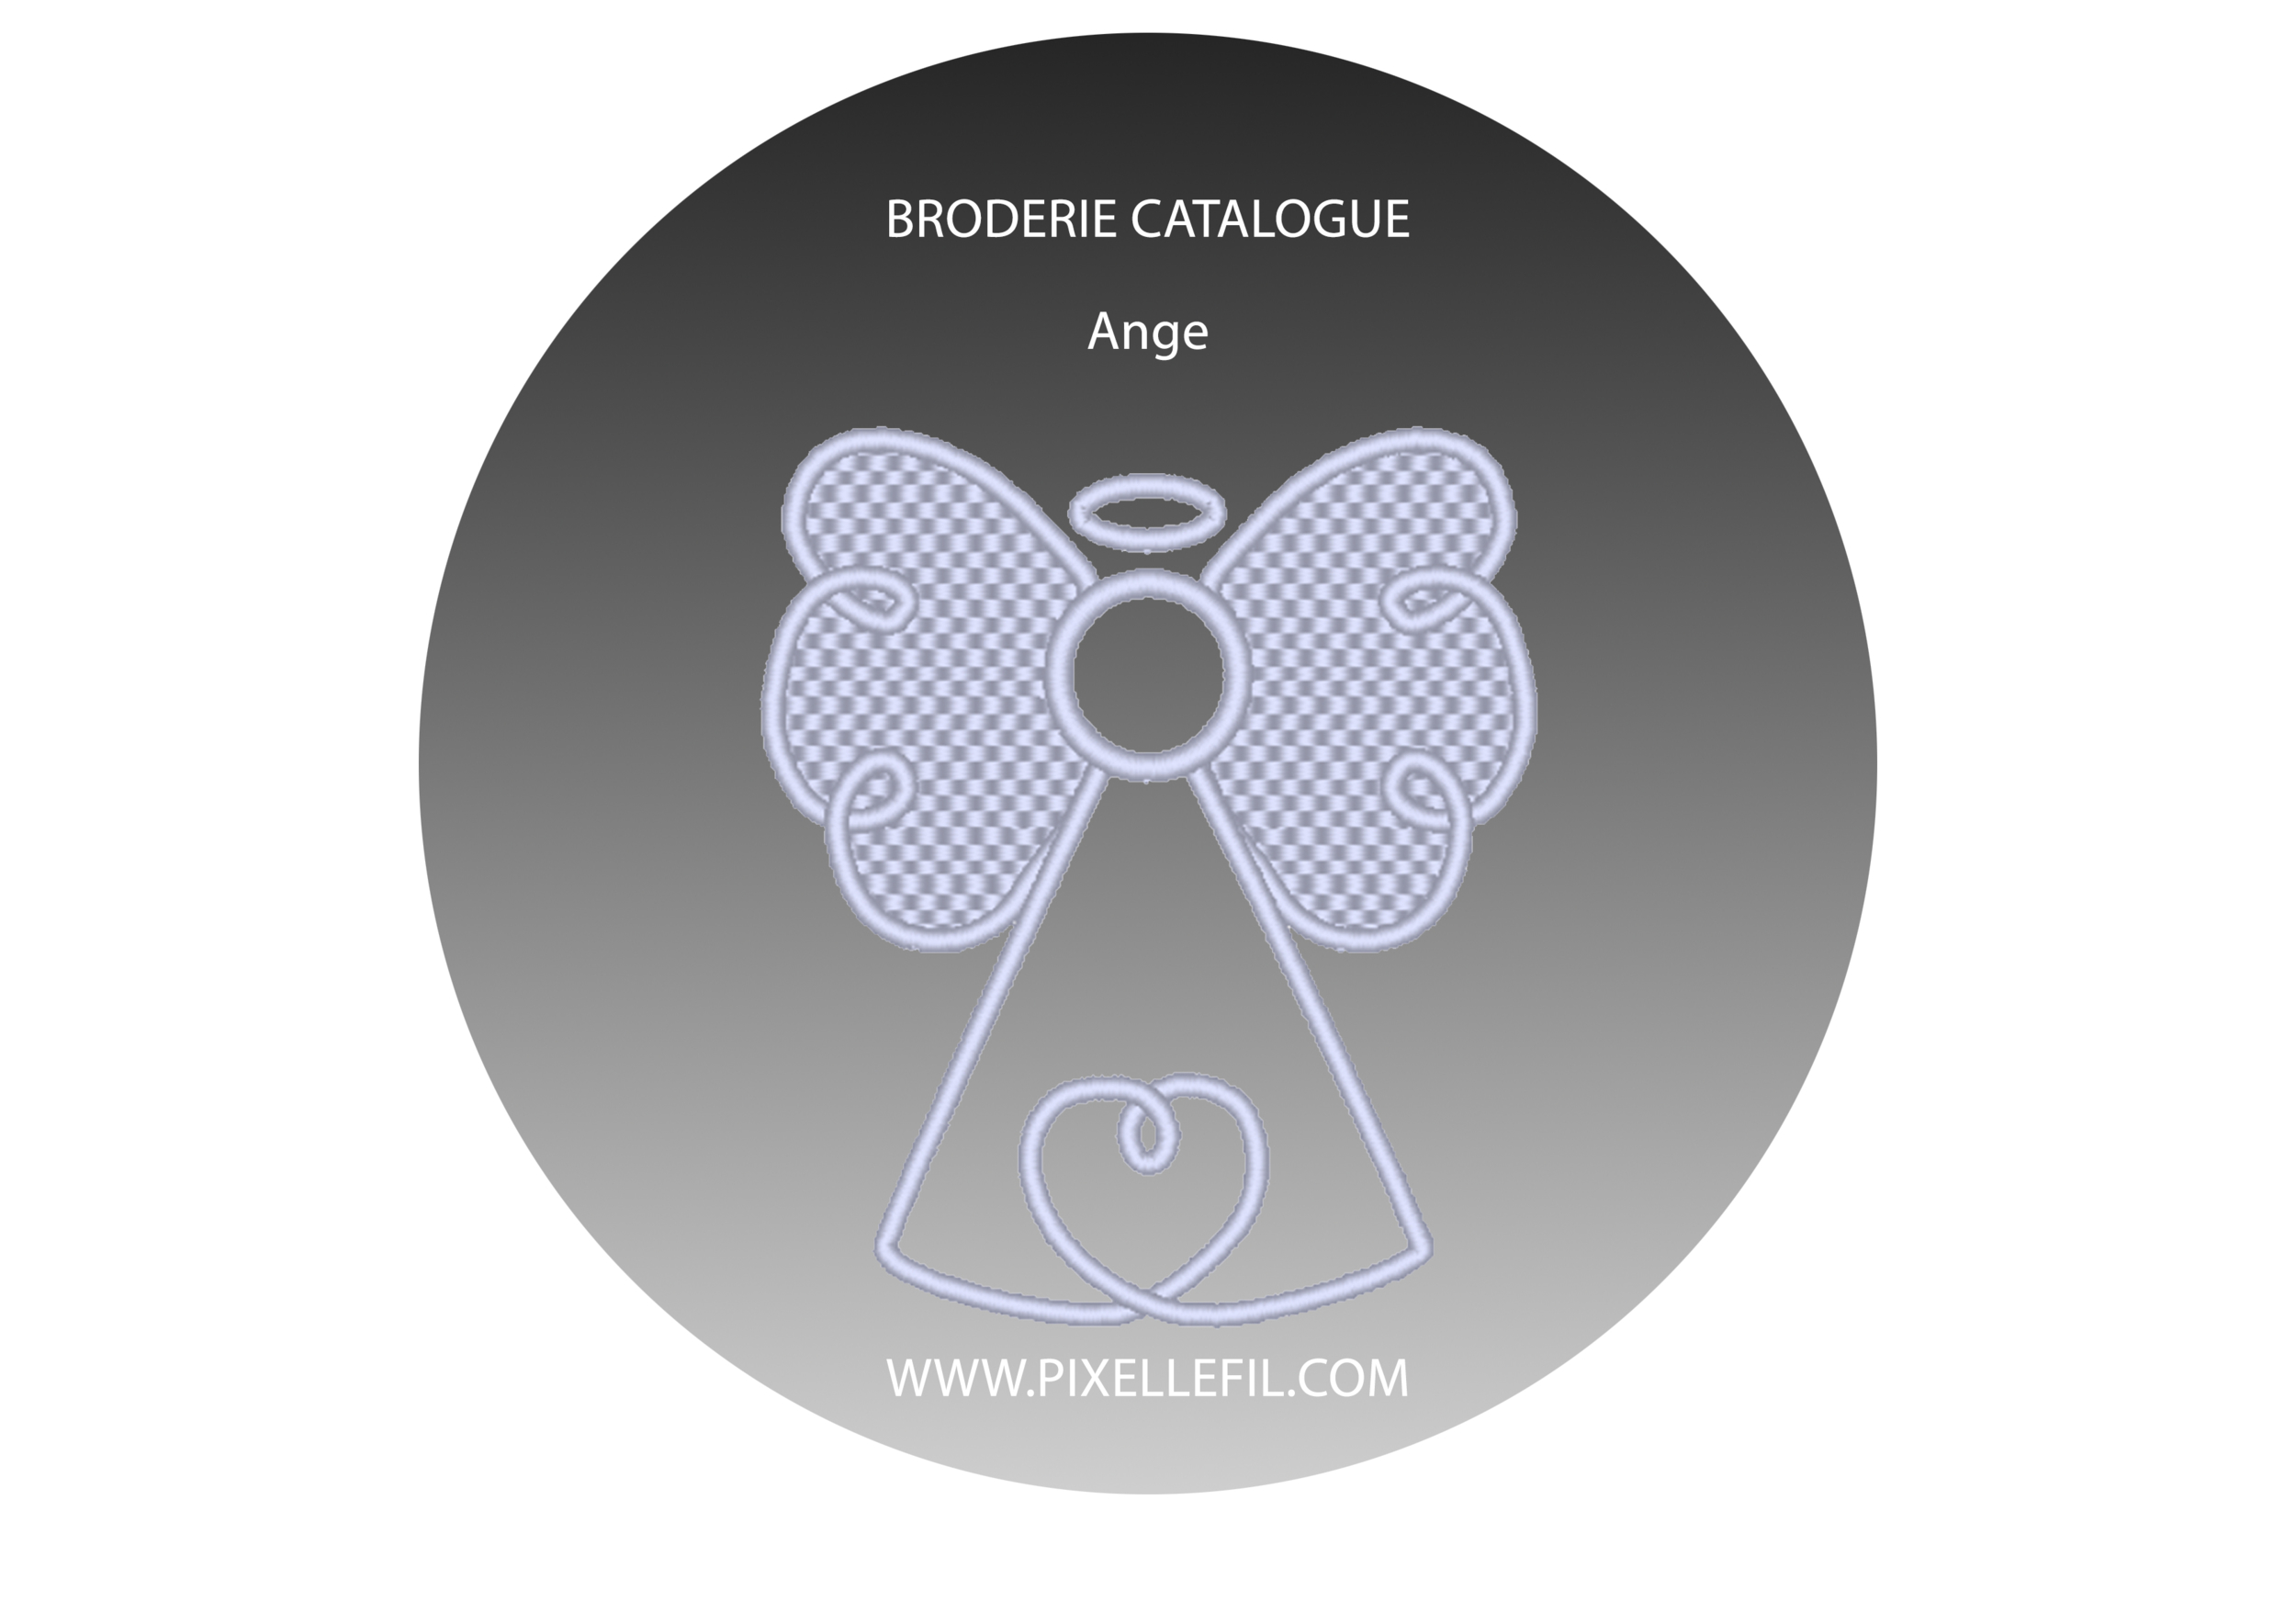 BRODERIE Catalogue Ange